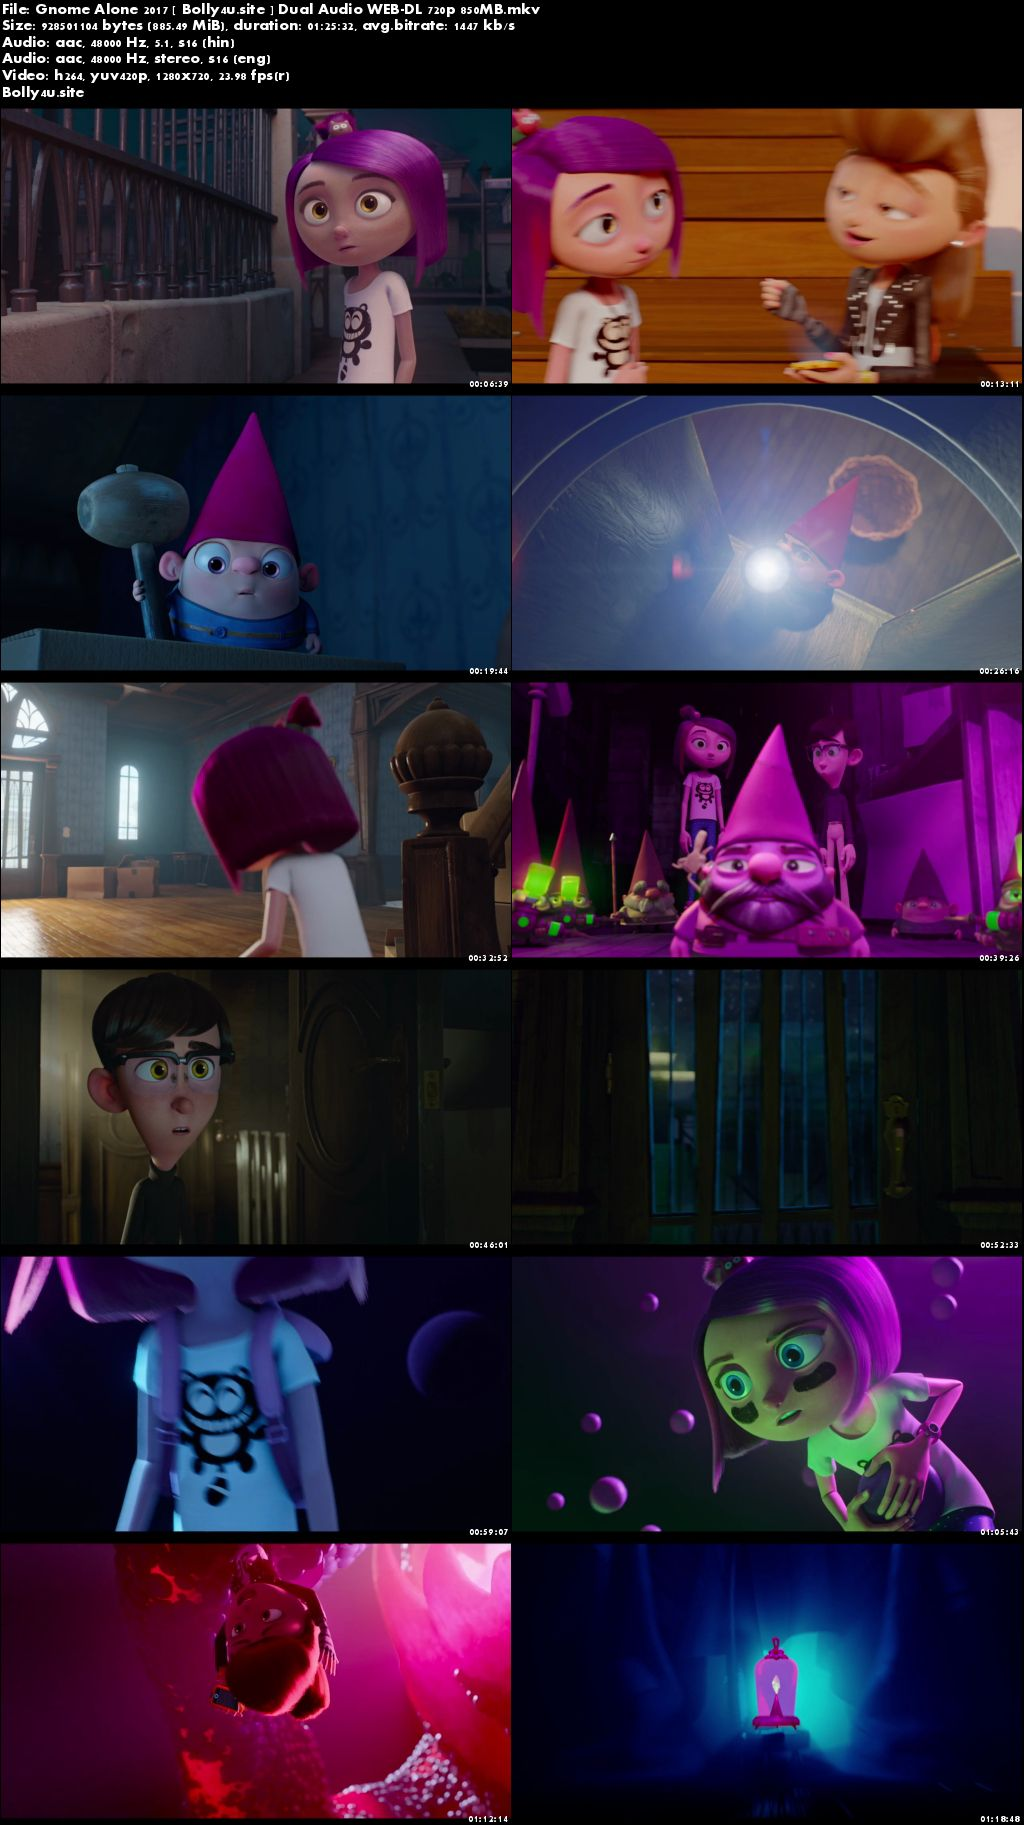 Gnome Alone 2017 WEB-DL 280Mb Hindi Dual Audio 480p Download